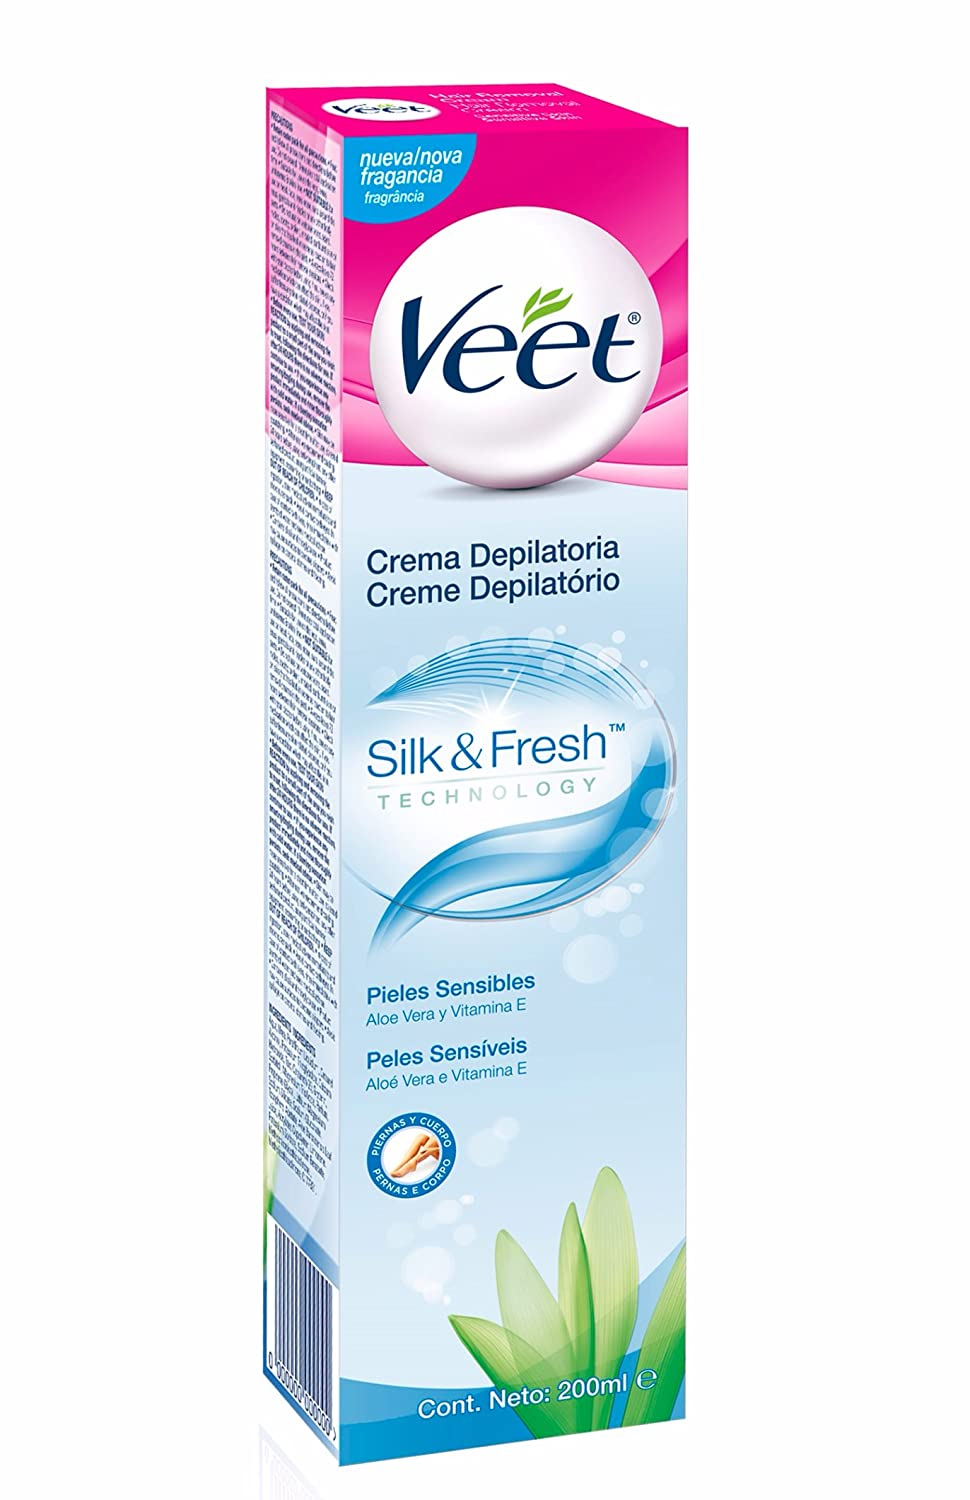 Veet Crema Depilatoria Piel Sensible - 200 ml